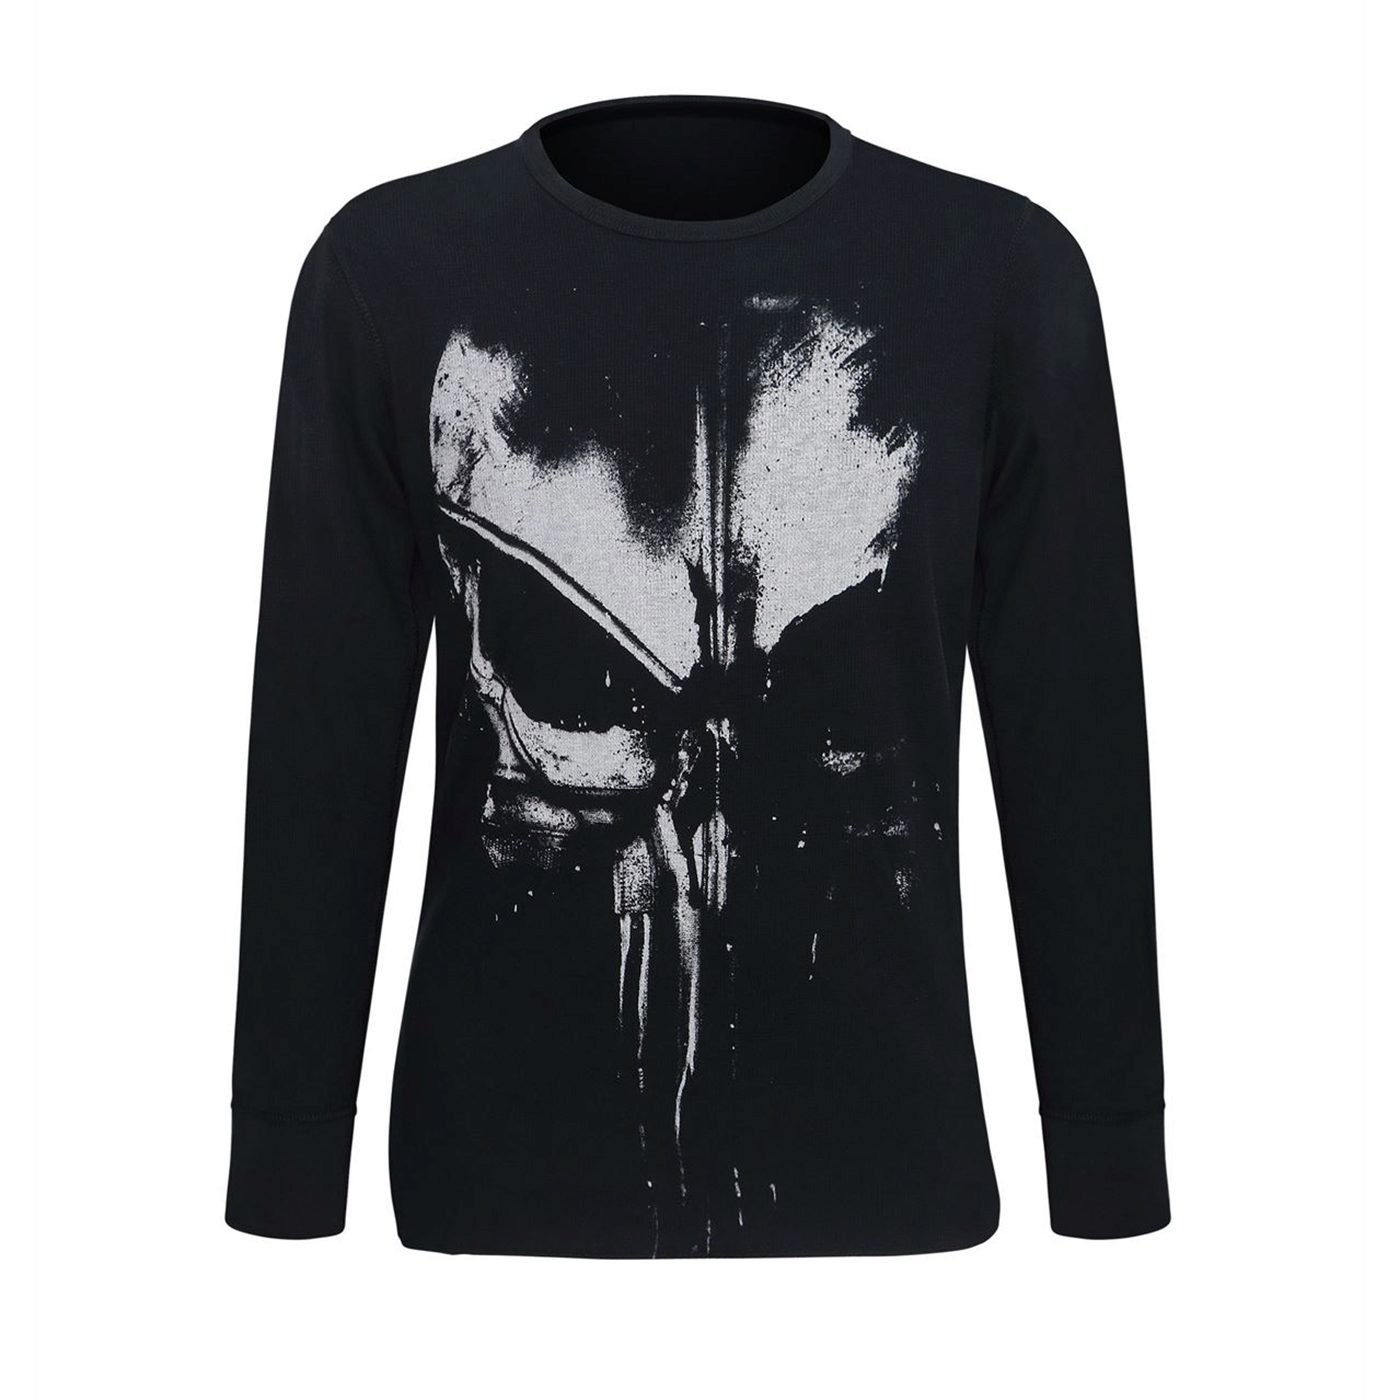 T-shirt manica lunga The punisher da uomo